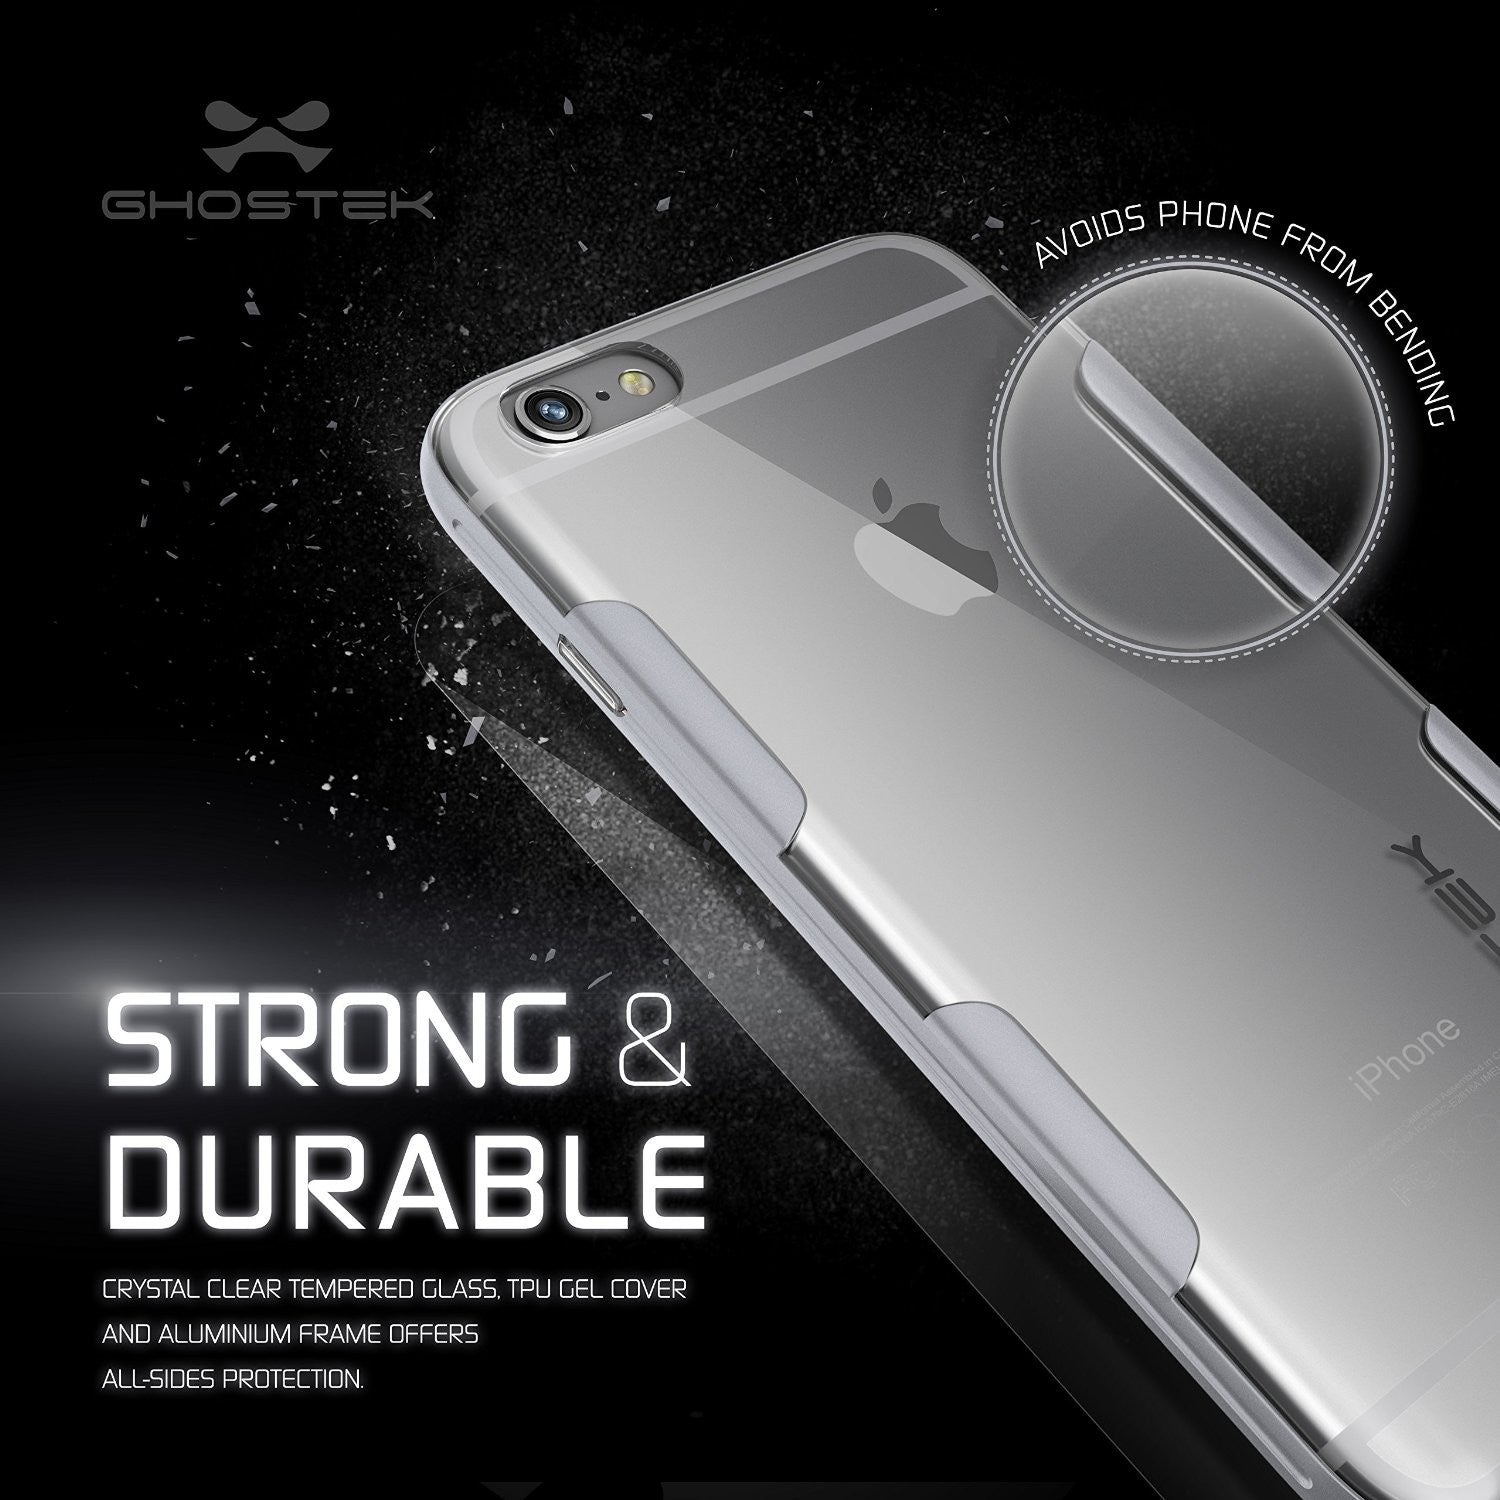 iPhone 6s Plus Case Silver Ghostek Cloak, Slim Protective w/ Tempered Glass | Lifetime Warranty